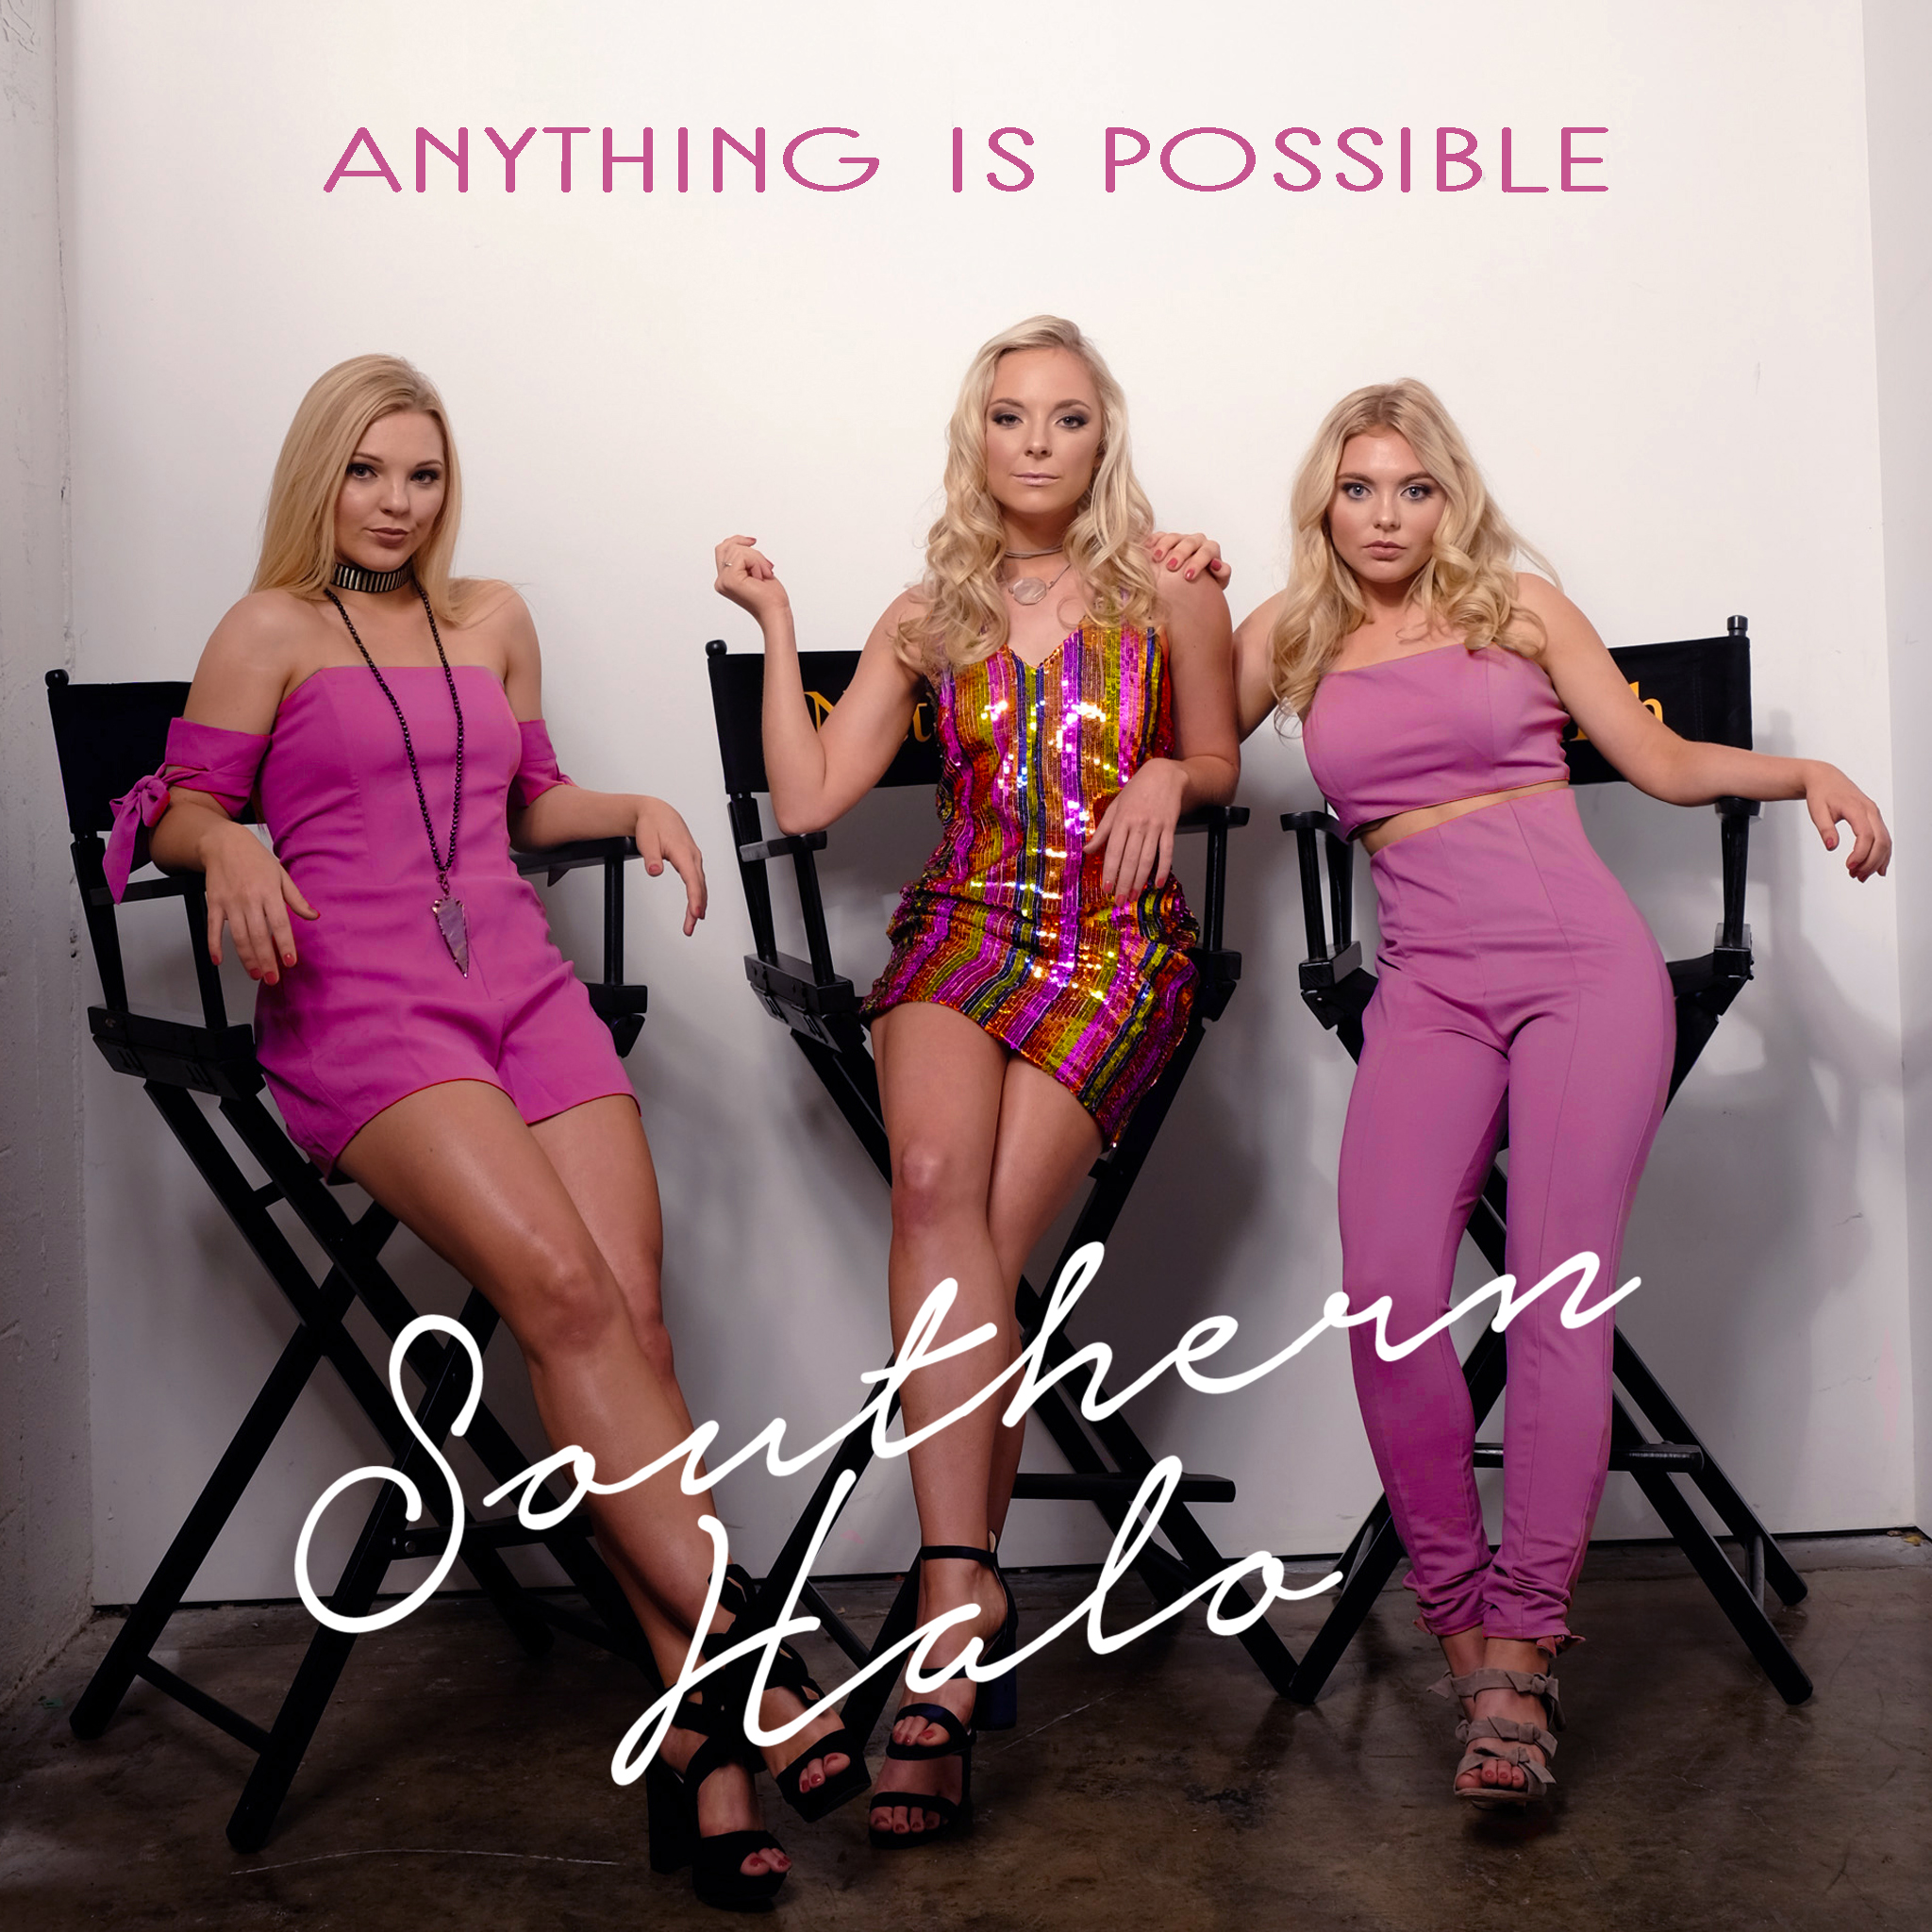 http://www.somuchmoore.com/images/releases/sh_anthing_cover.jpg